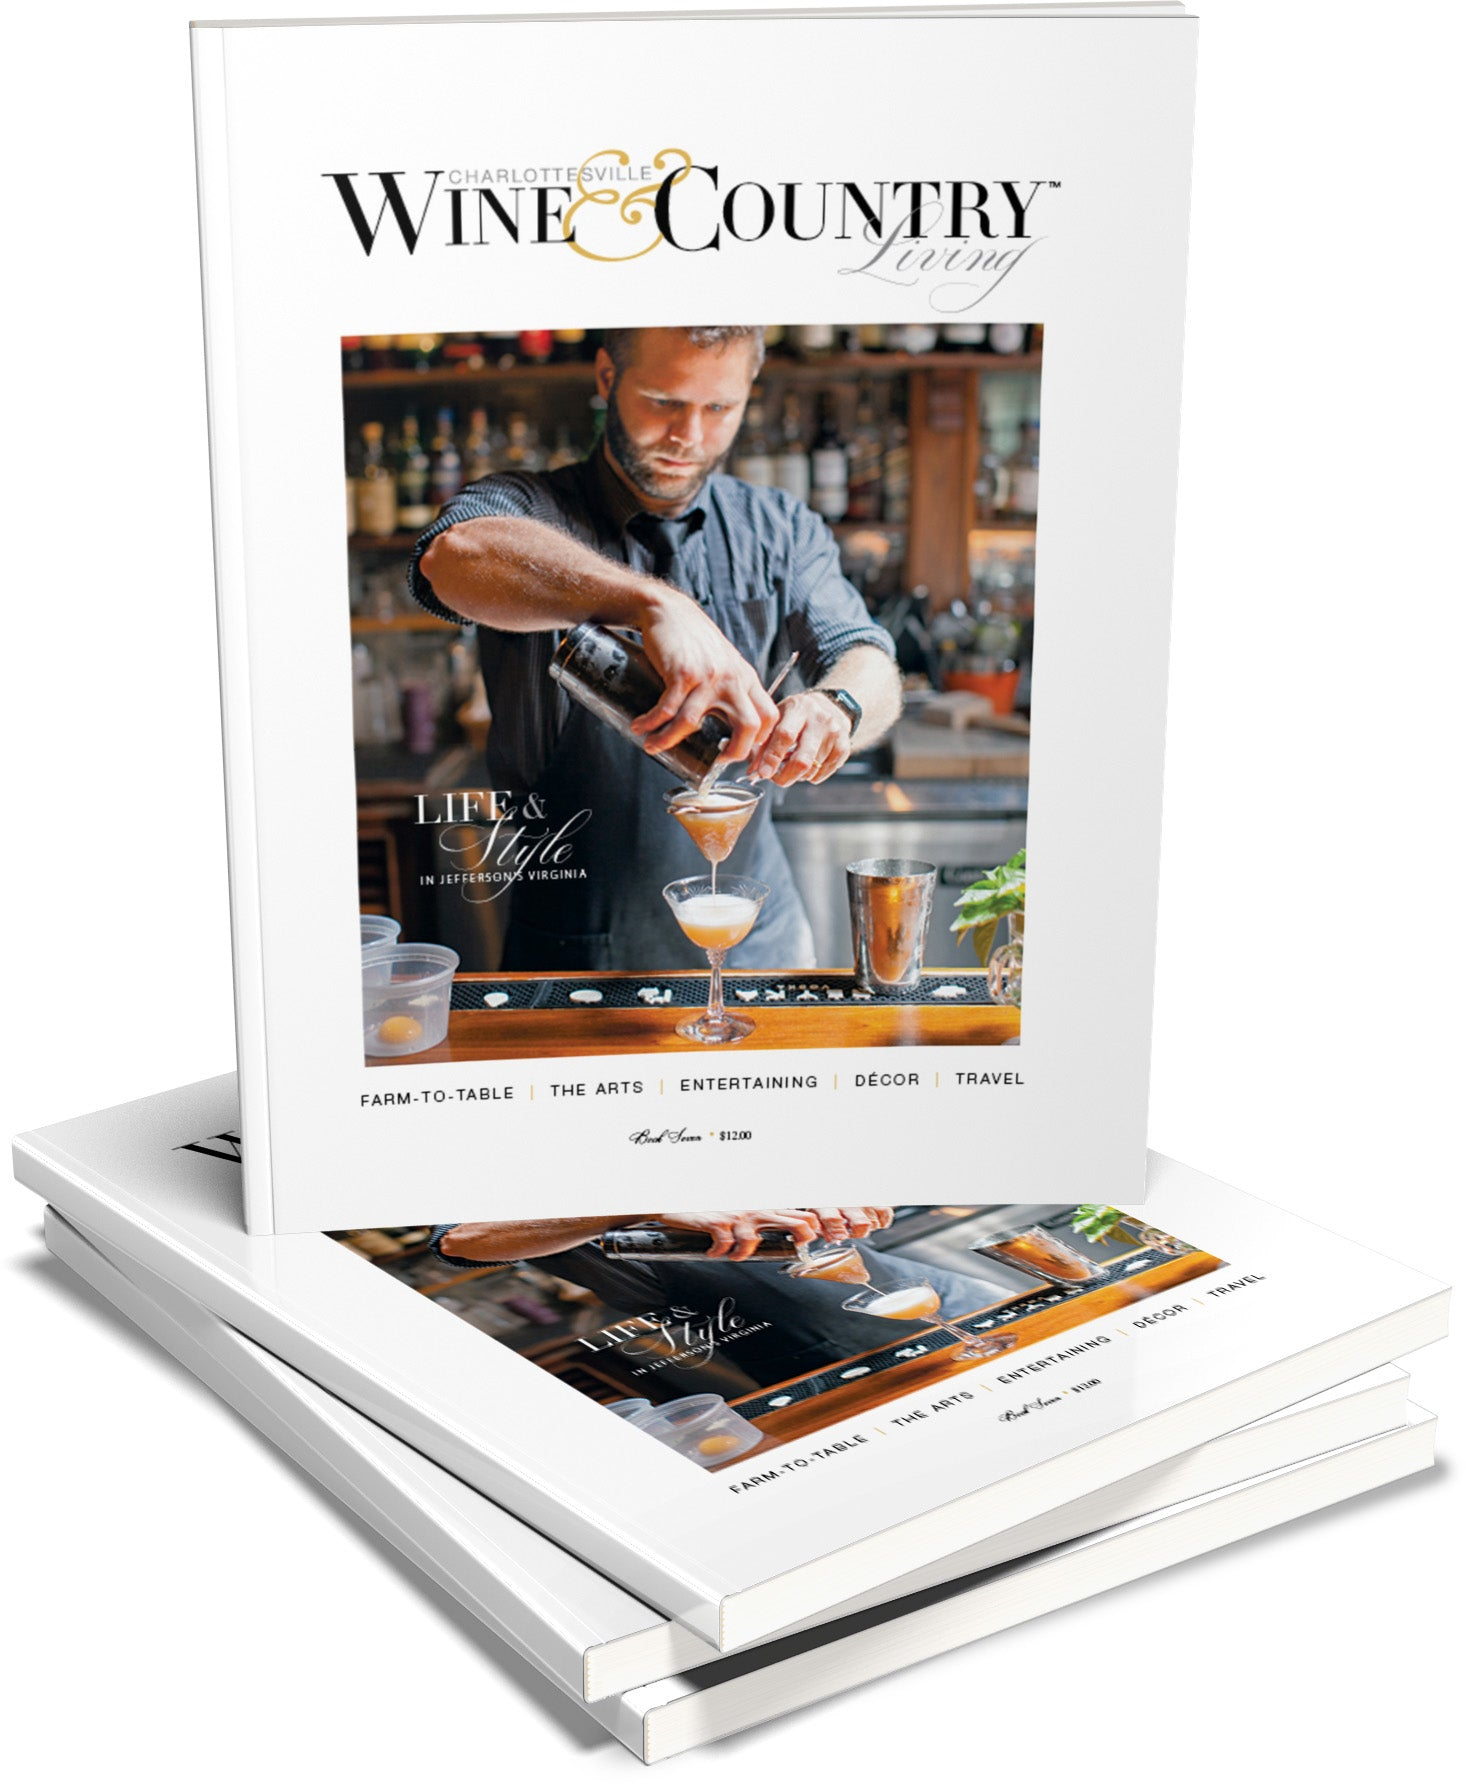 W&C Life Book 7 - Fall 2018 PRINT - SINGLE ISSUE